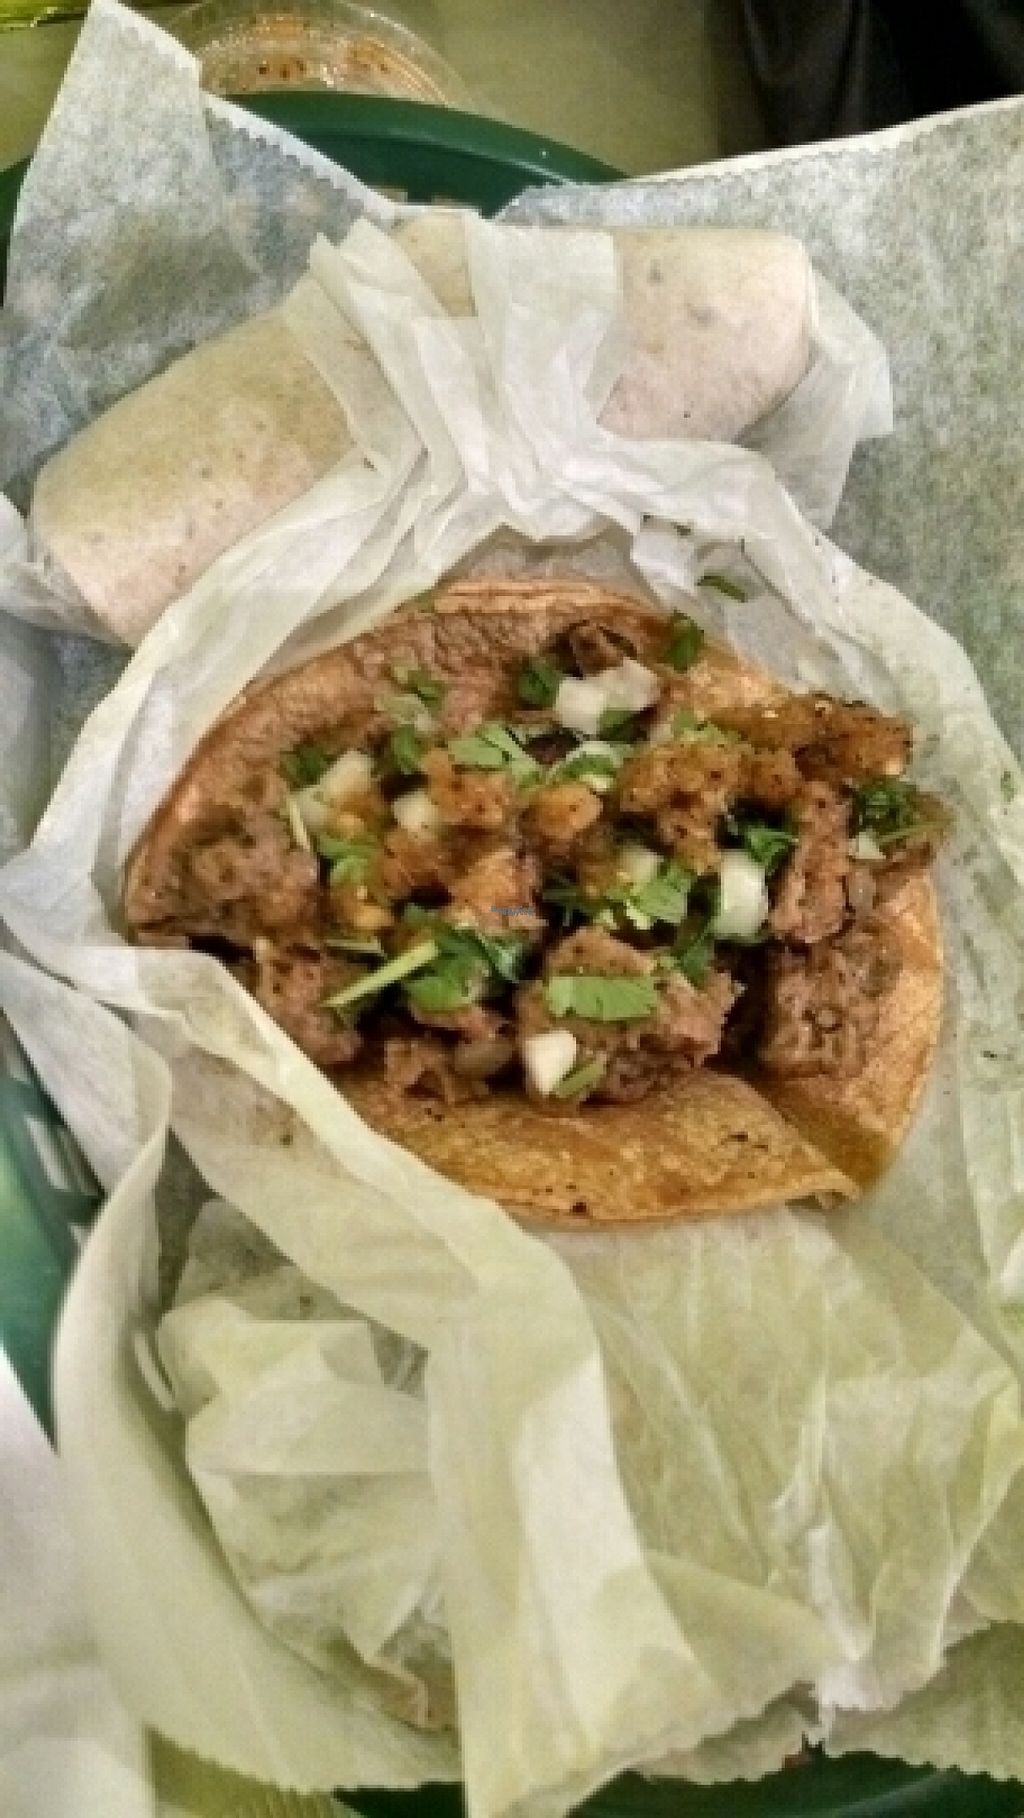 """Photo of Salsita  by <a href=""""/members/profile/GreenEyedMoFo"""">GreenEyedMoFo</a> <br/>Beef Seitan Taco <br/> August 2, 2016  - <a href='/contact/abuse/image/54461/164410'>Report</a>"""